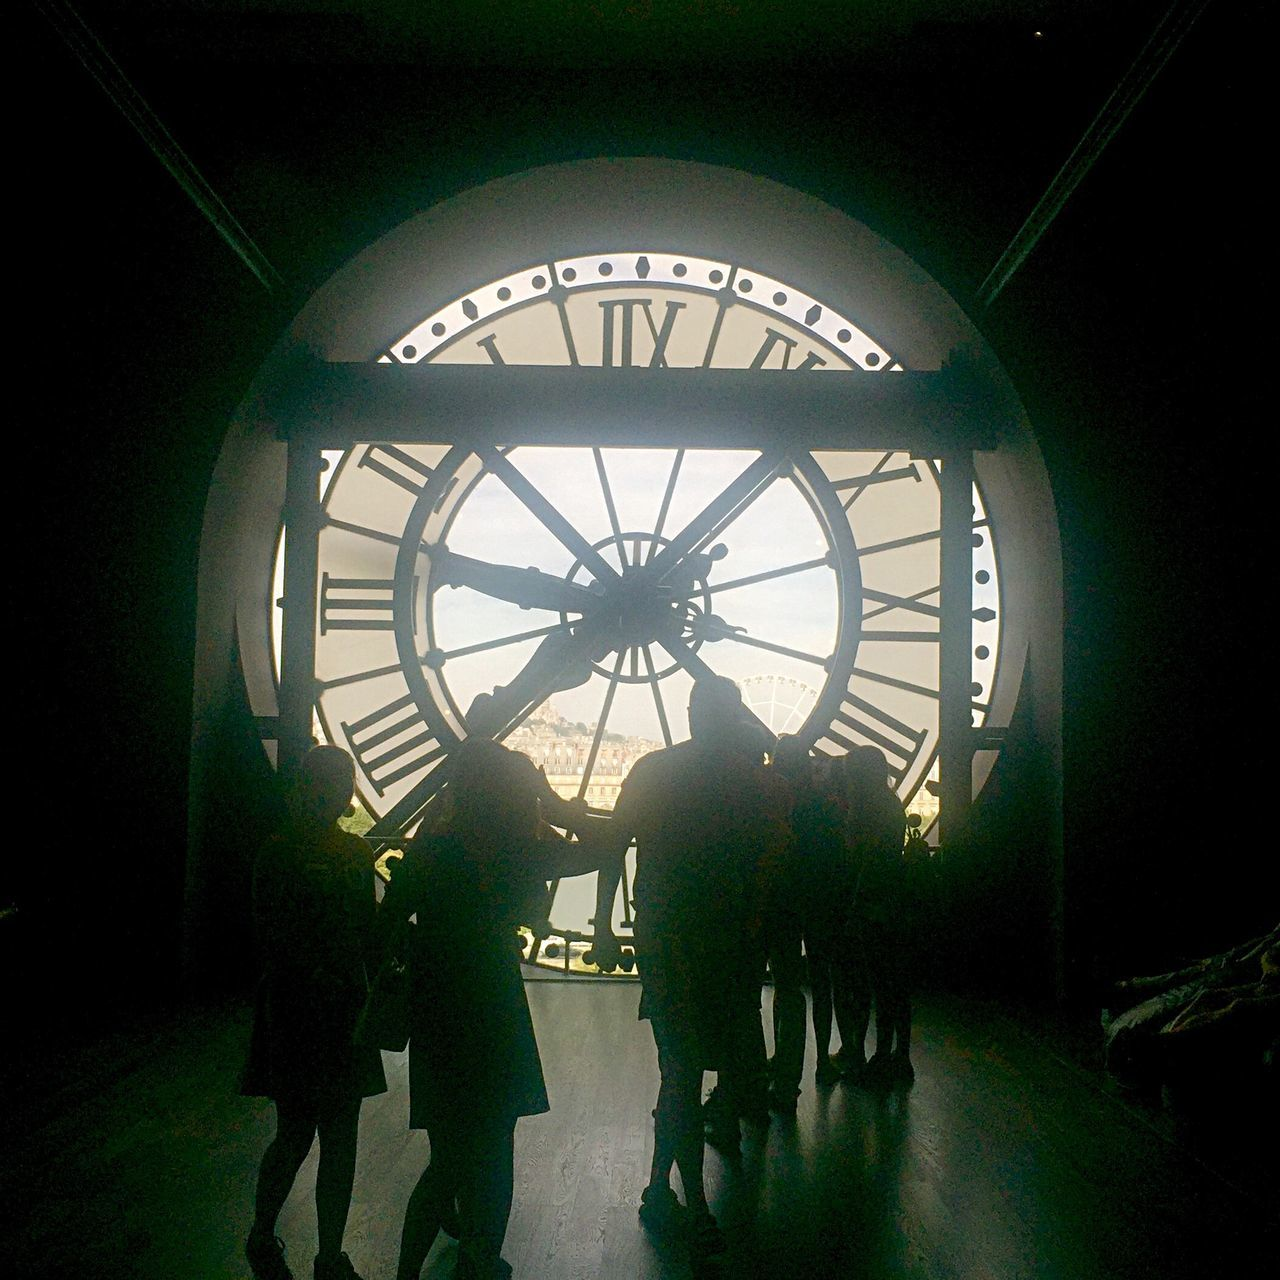 clock, time, real people, indoors, roman numeral, men, silhouette, architecture, day, women, built structure, lifestyles, clock face, large group of people, full length, standing, minute hand, clock tower, group of people, hour hand, people